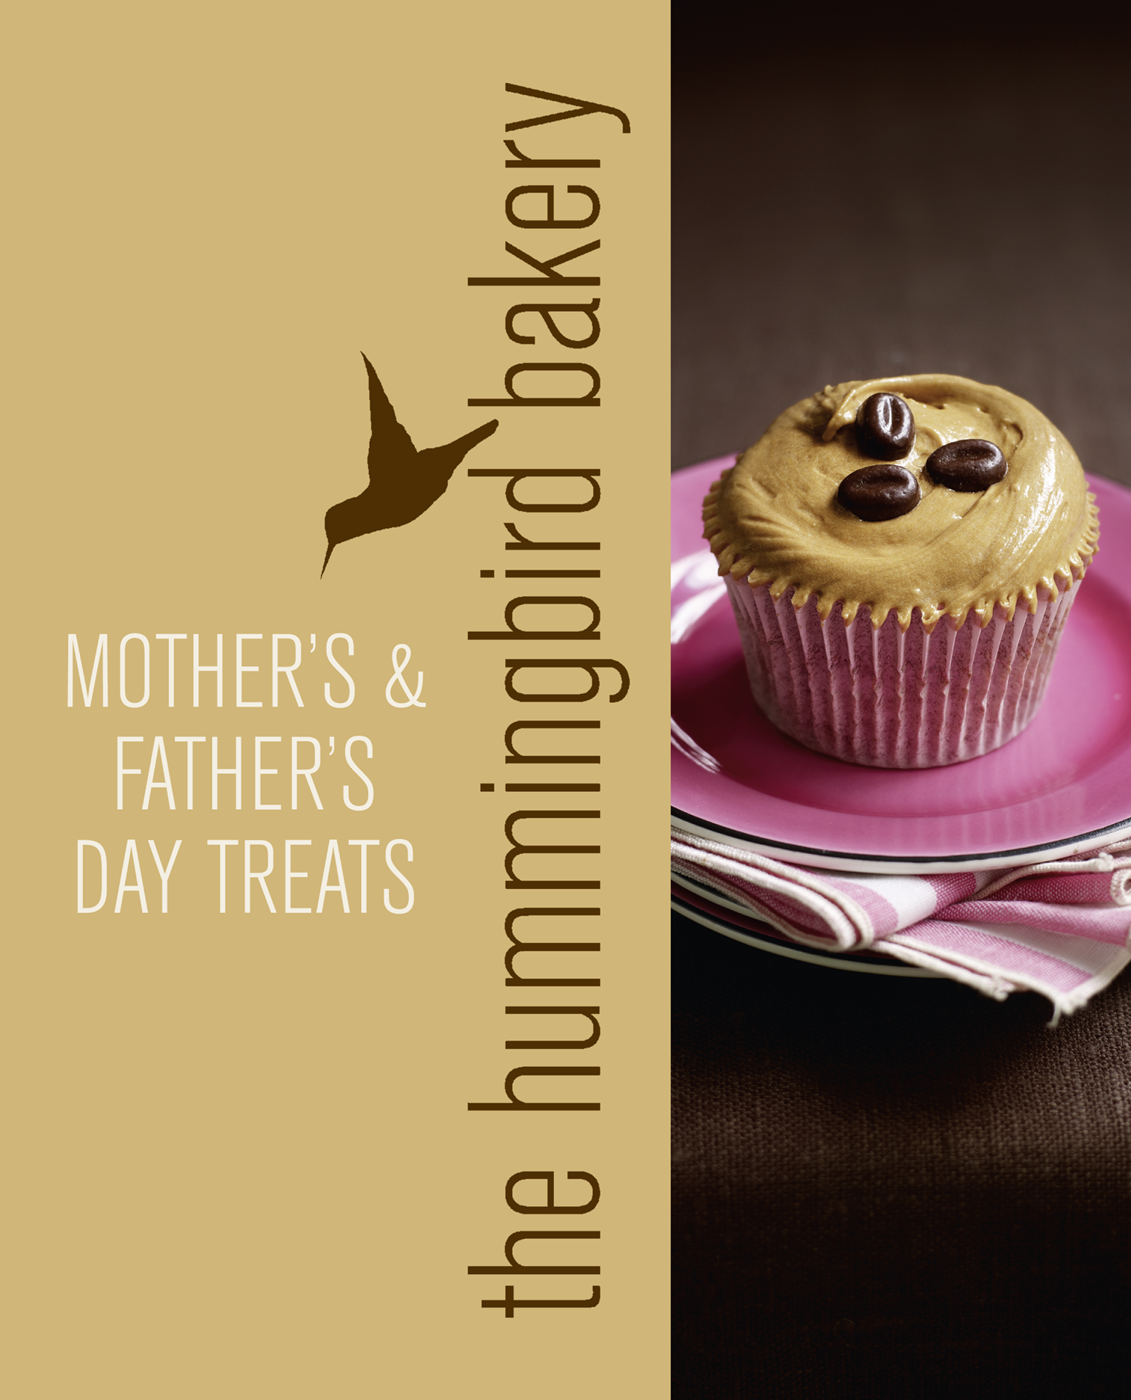 Tarek Malouf Hummingbird Bakery Mother's and Father's Day Treats: An Extract from Cake Days three tier cream acrylic square cake stand